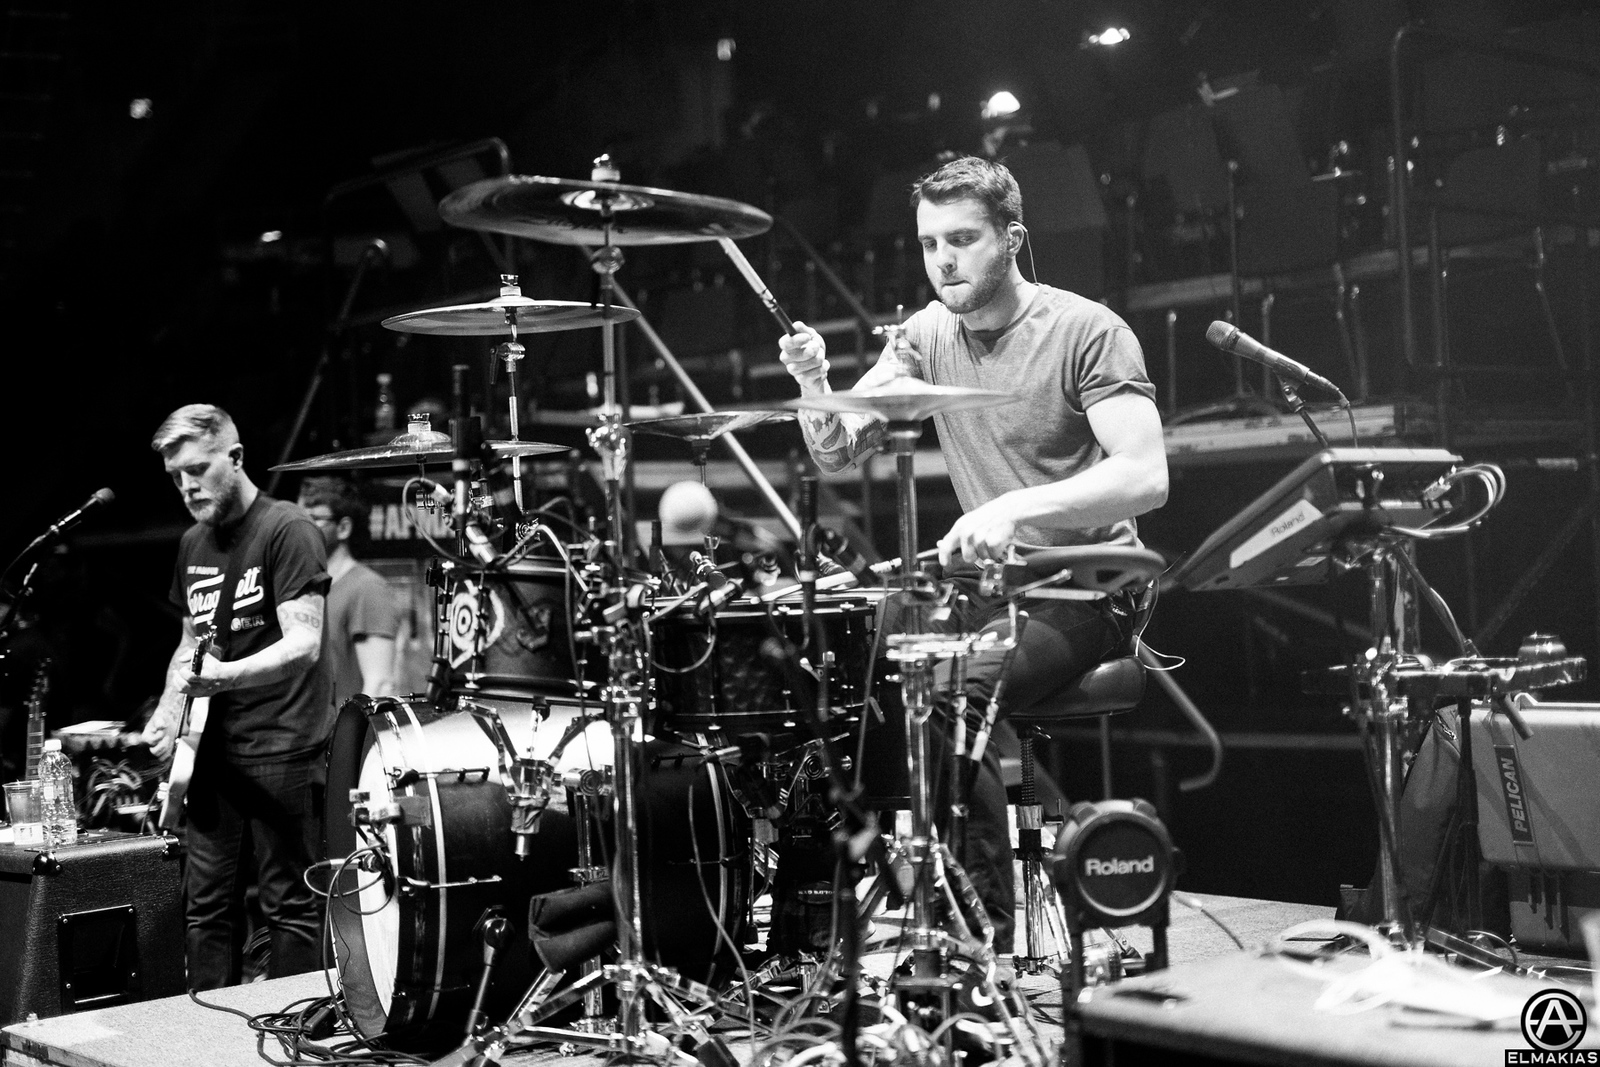 Rian Dawson of All Time Low at rehearsals for the Alternative Press Music Awards 2015